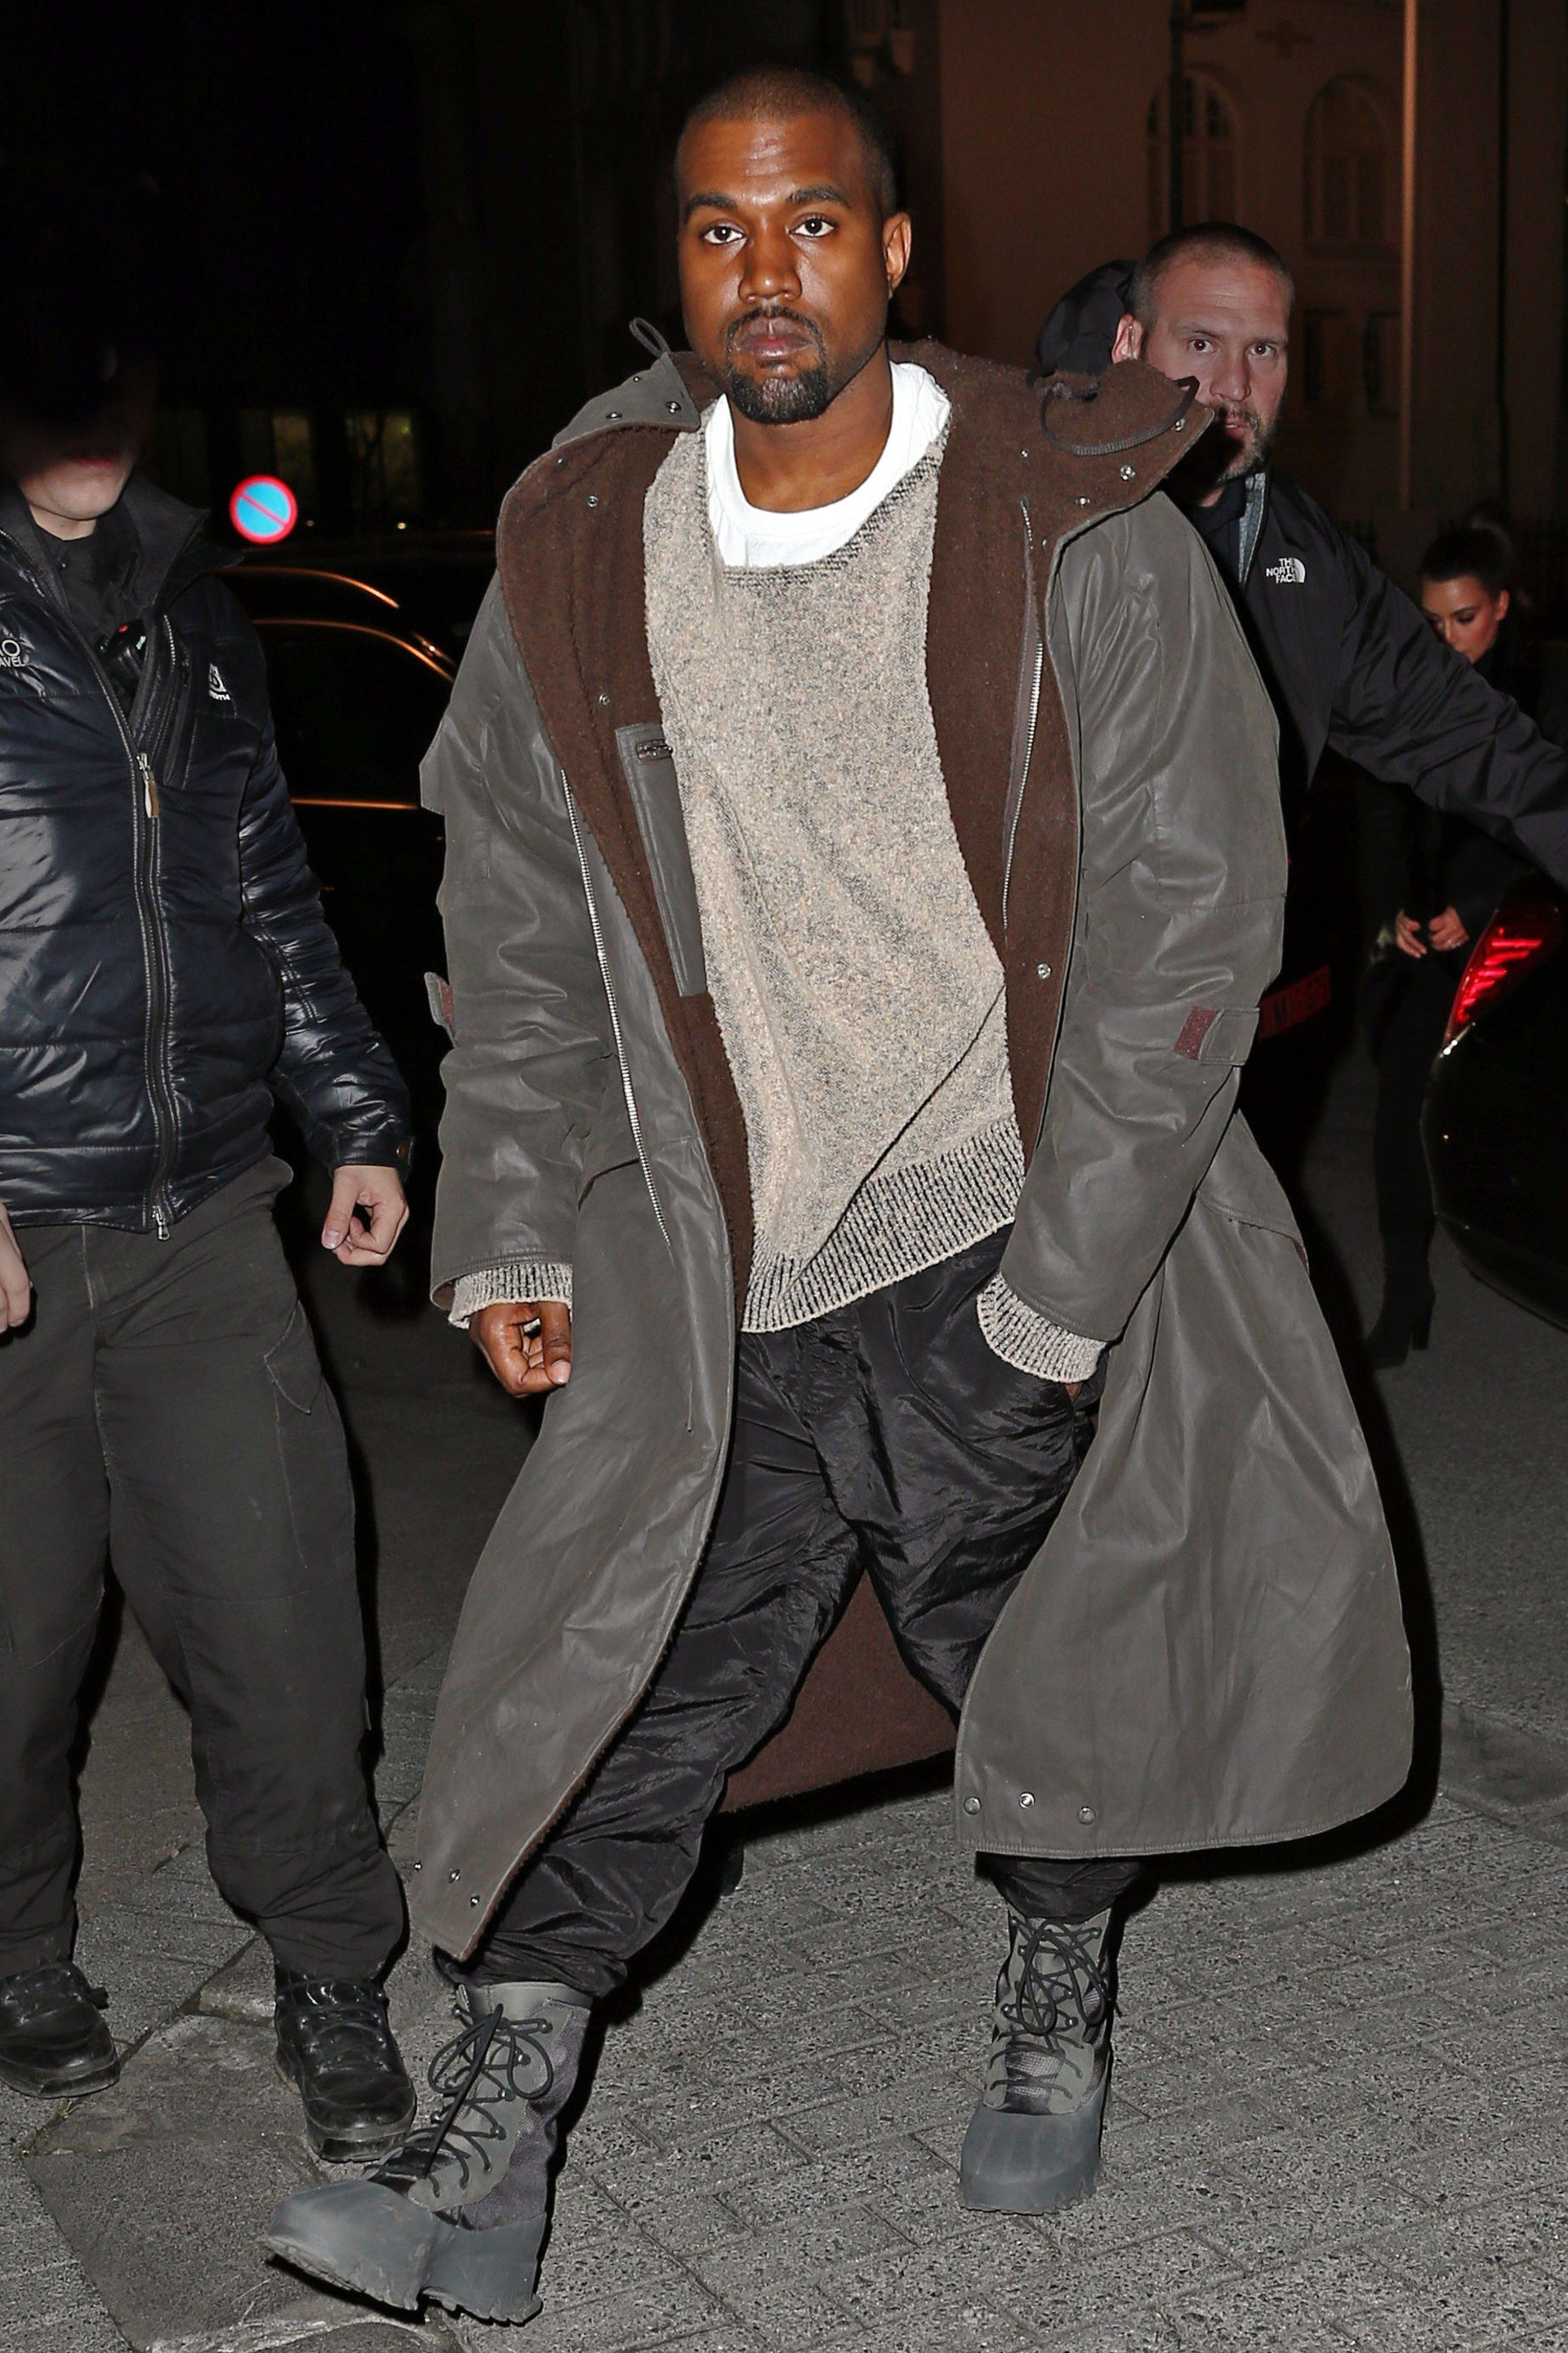 A Kanye Level Collection Of The Rapper Producer Designer Twitter Legend S Best Kits Kanye West Style Kanye West Outfits Yeezy Fashion